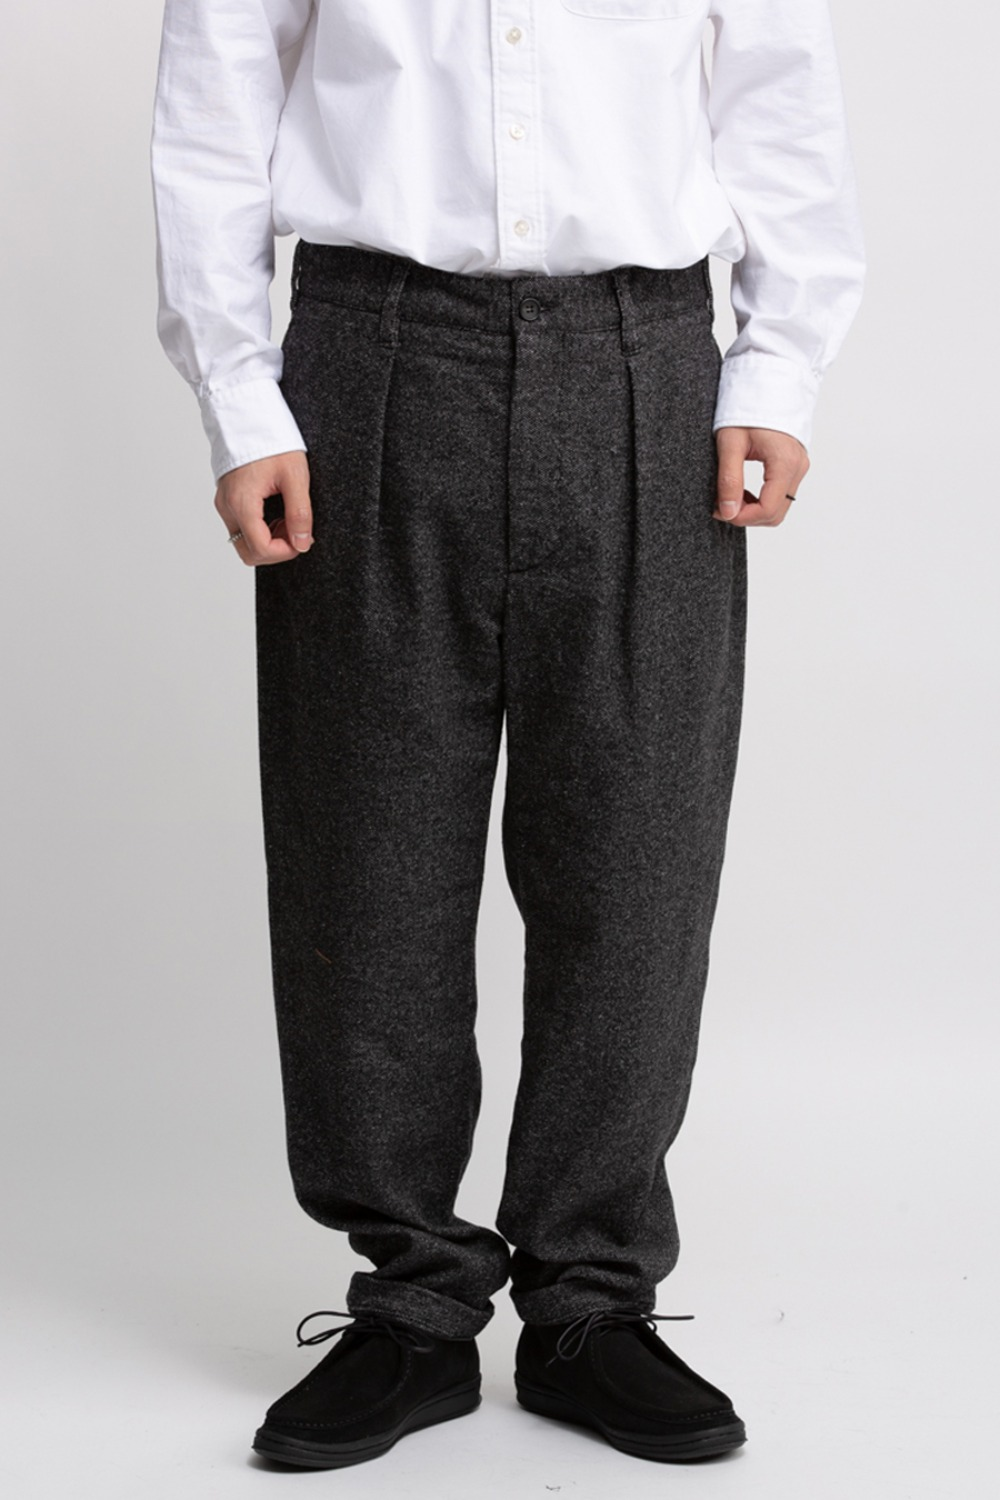 CARLYLE PANT GREY WOOL BLEND HOMESPUN